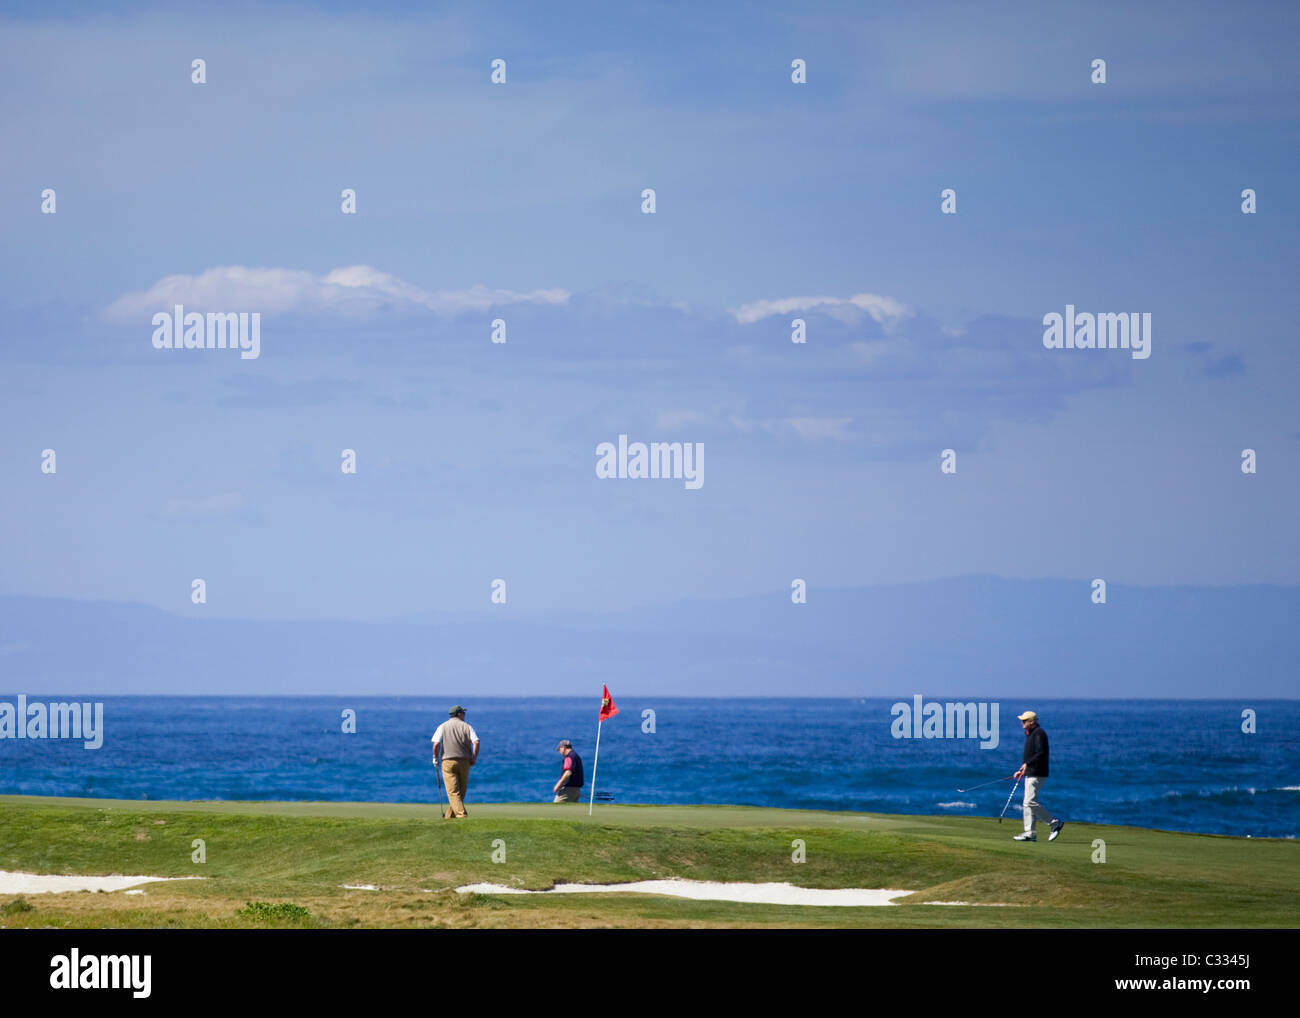 Golfers on putting green on the famous oceanfront Pebble Beach golf course - Stock Image